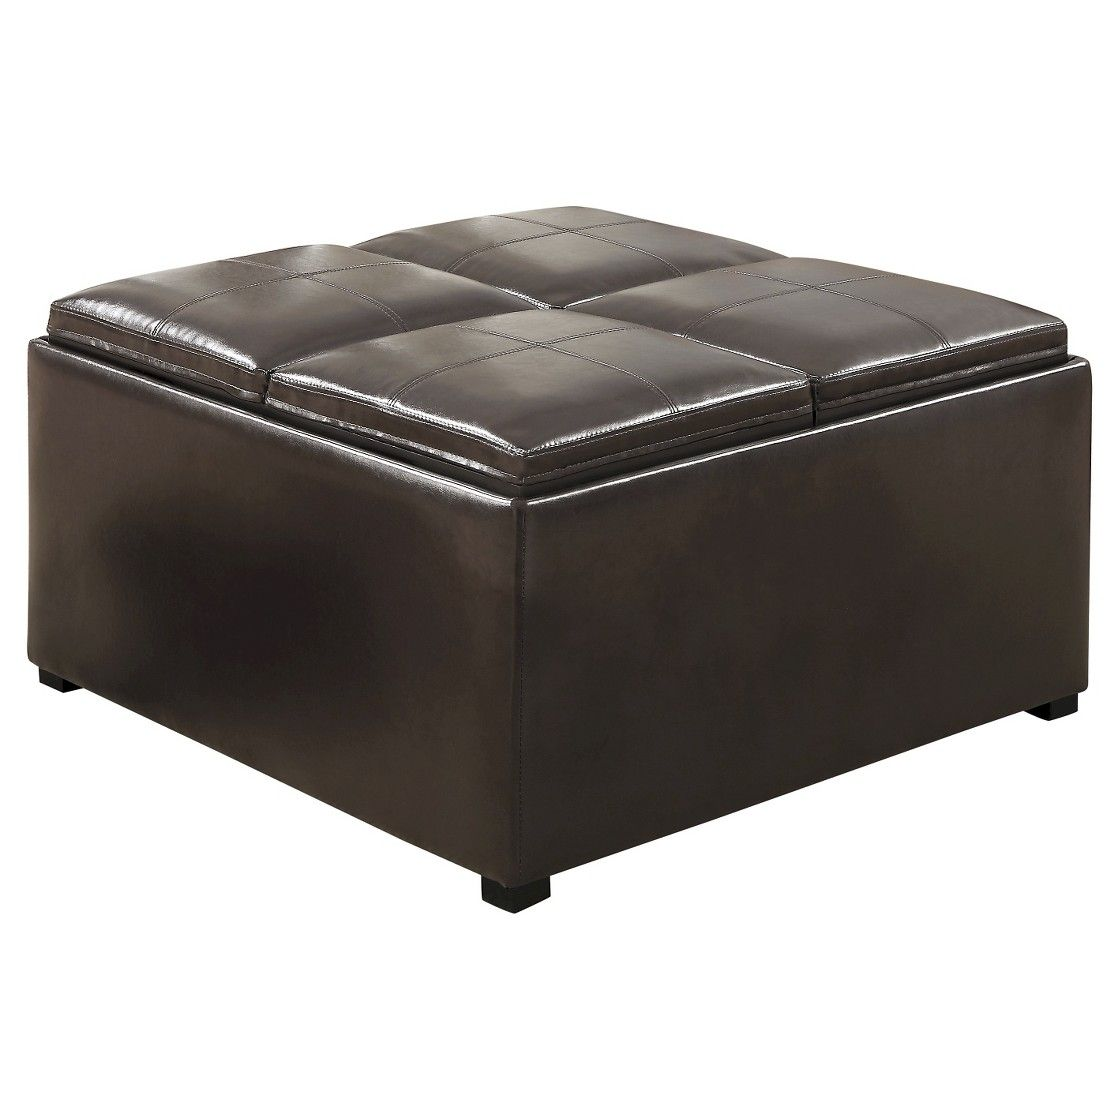 35 franklin square coffee table storage ottoman tanners